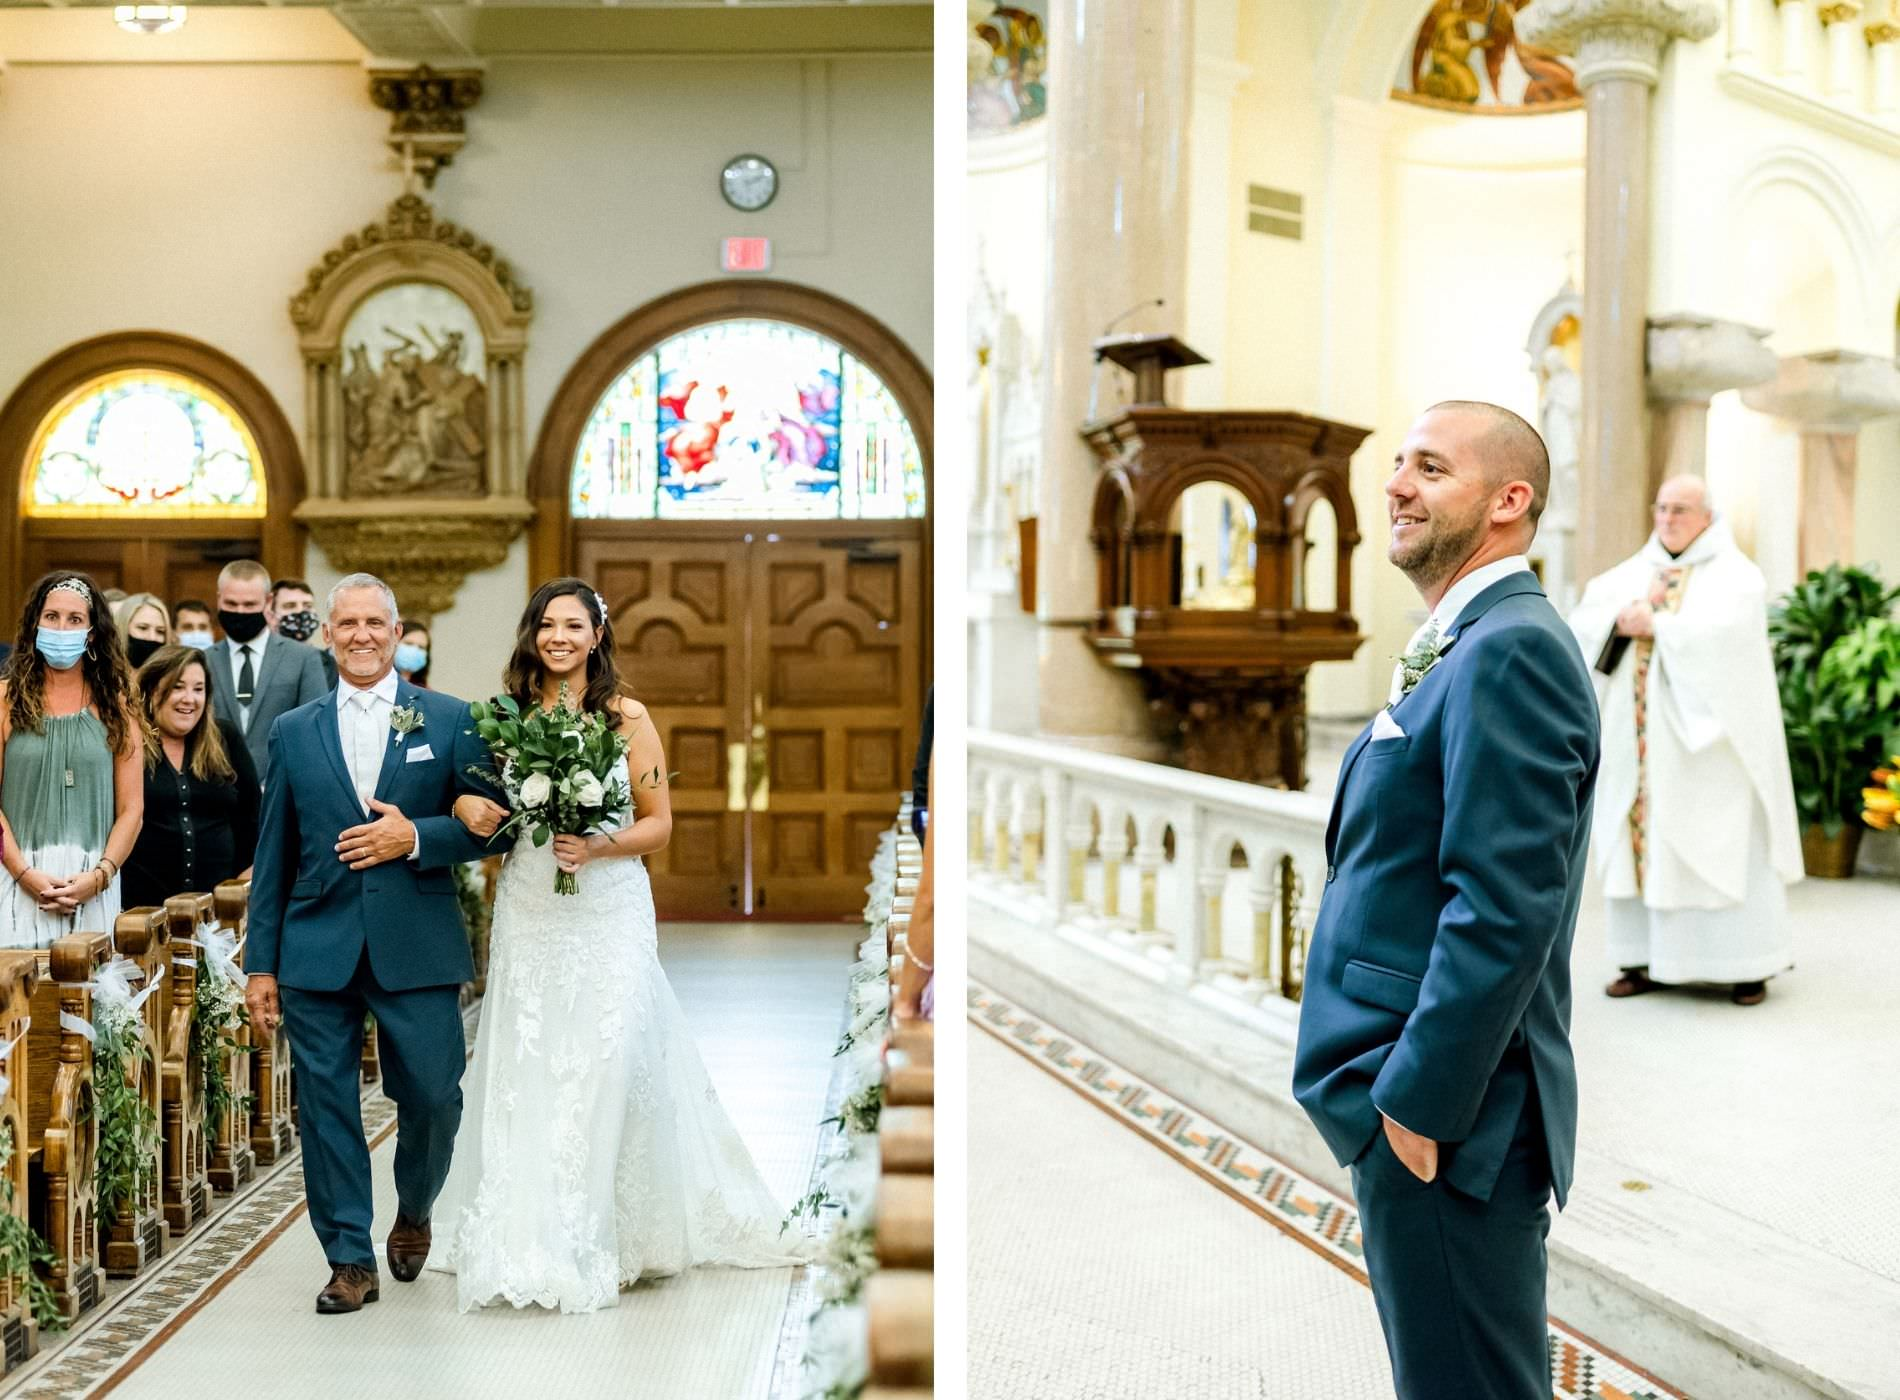 Bride Walking Down Aisle with Father during Downtown Tampa Wedding Ceremony at Sacred Heart Catholic Church | Church Ceremony Aisle with Greenery | Father of the Bride and Groom Wearing Classic Navy Suit